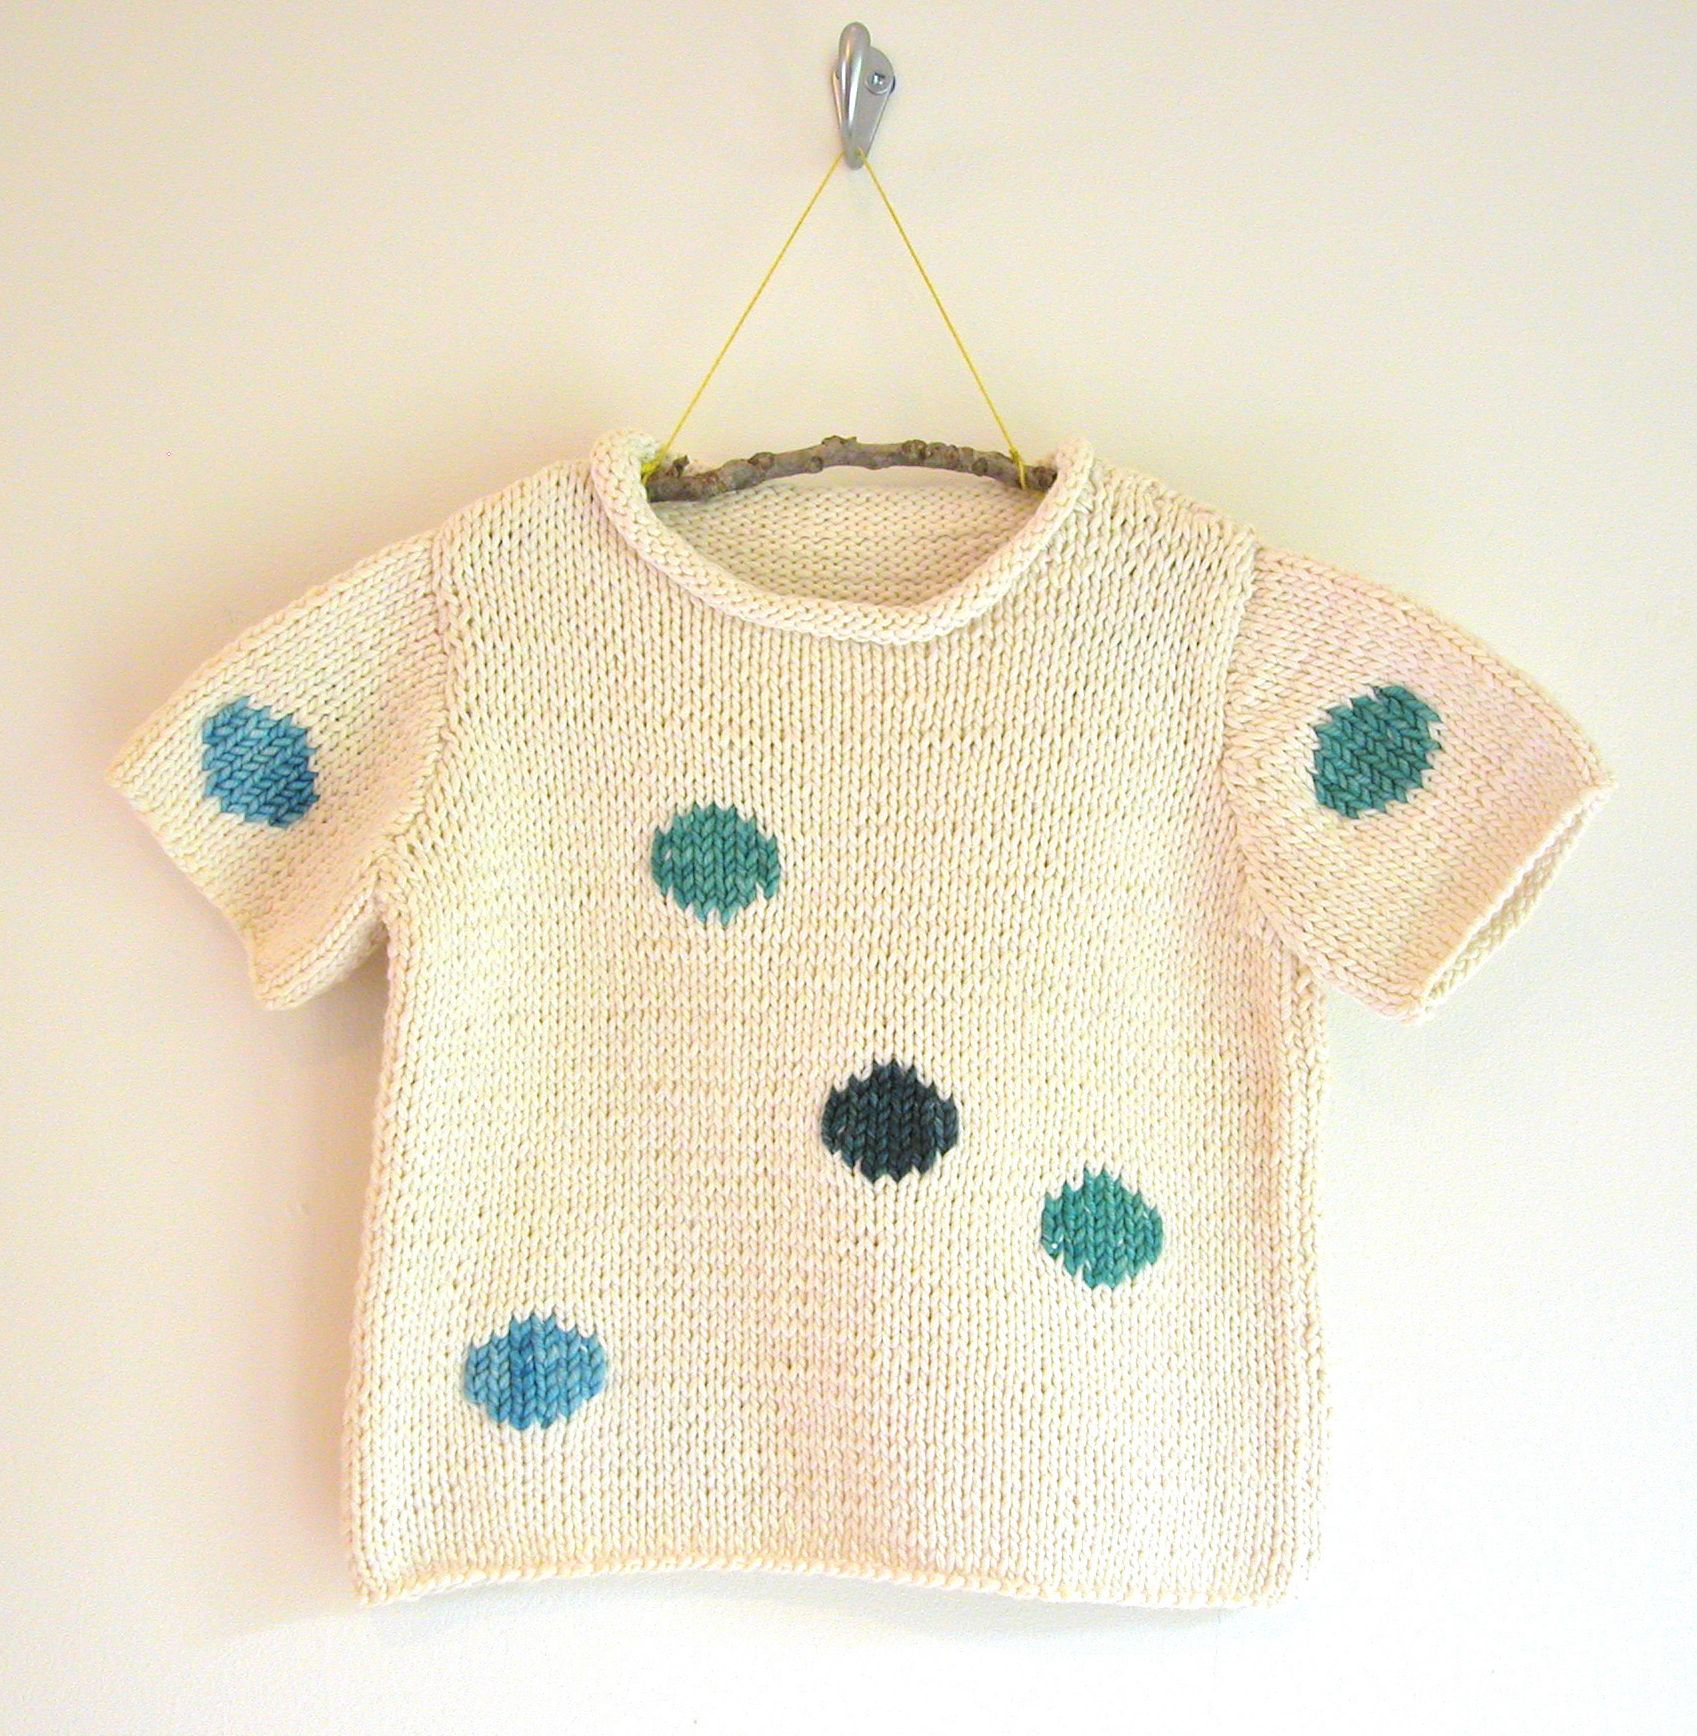 knit t-shirt pattern | the knit cafe